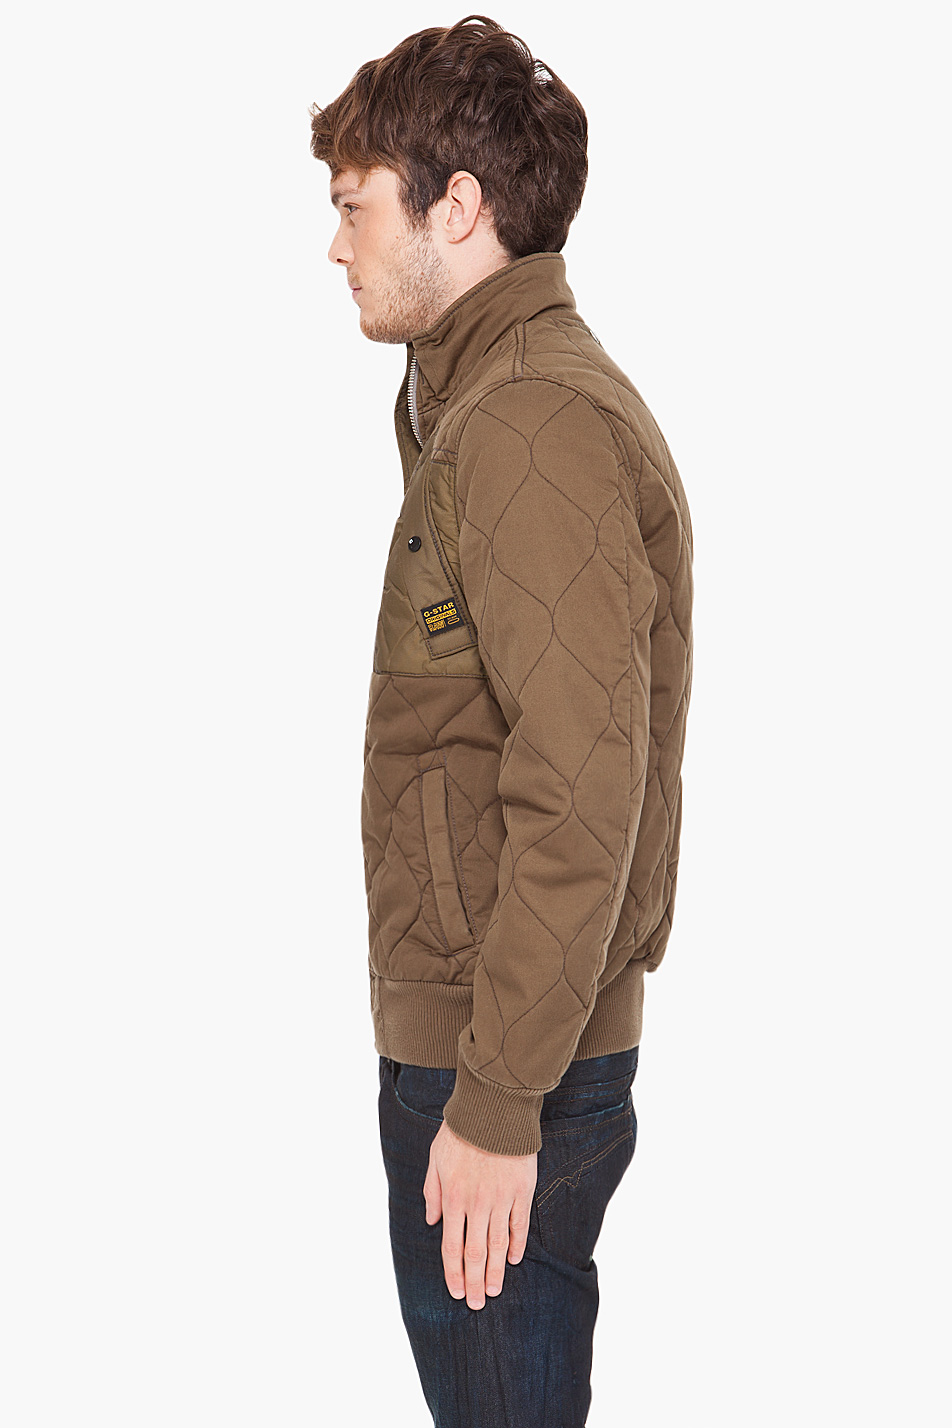 g star raw vulcan bomber jacket in brown for men lyst. Black Bedroom Furniture Sets. Home Design Ideas